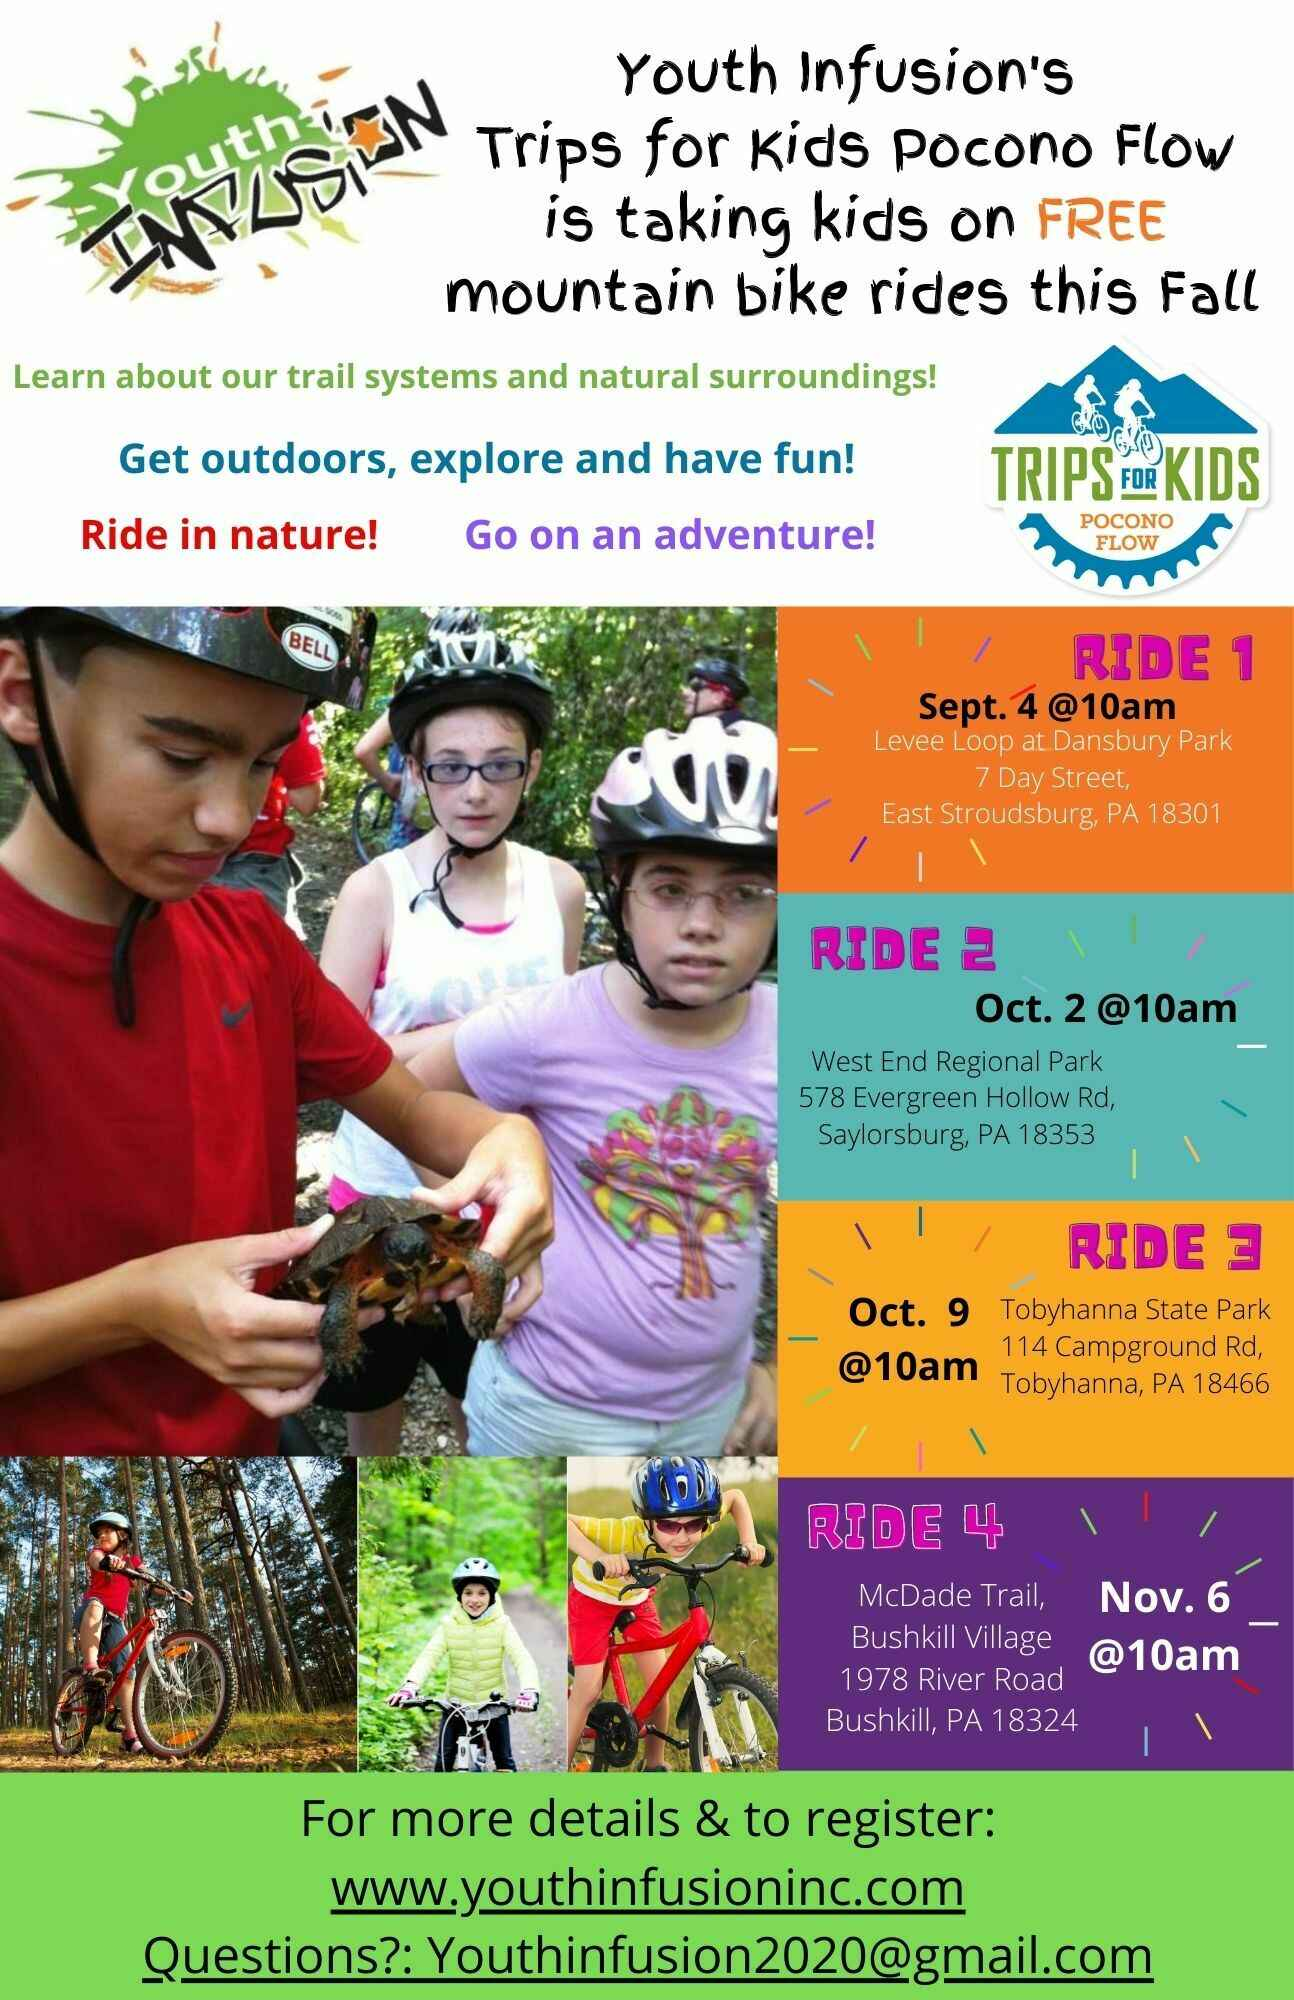 FREE Trips for Kids Pocono Flow Trail Ride - Saturday, October 9, 2021 image